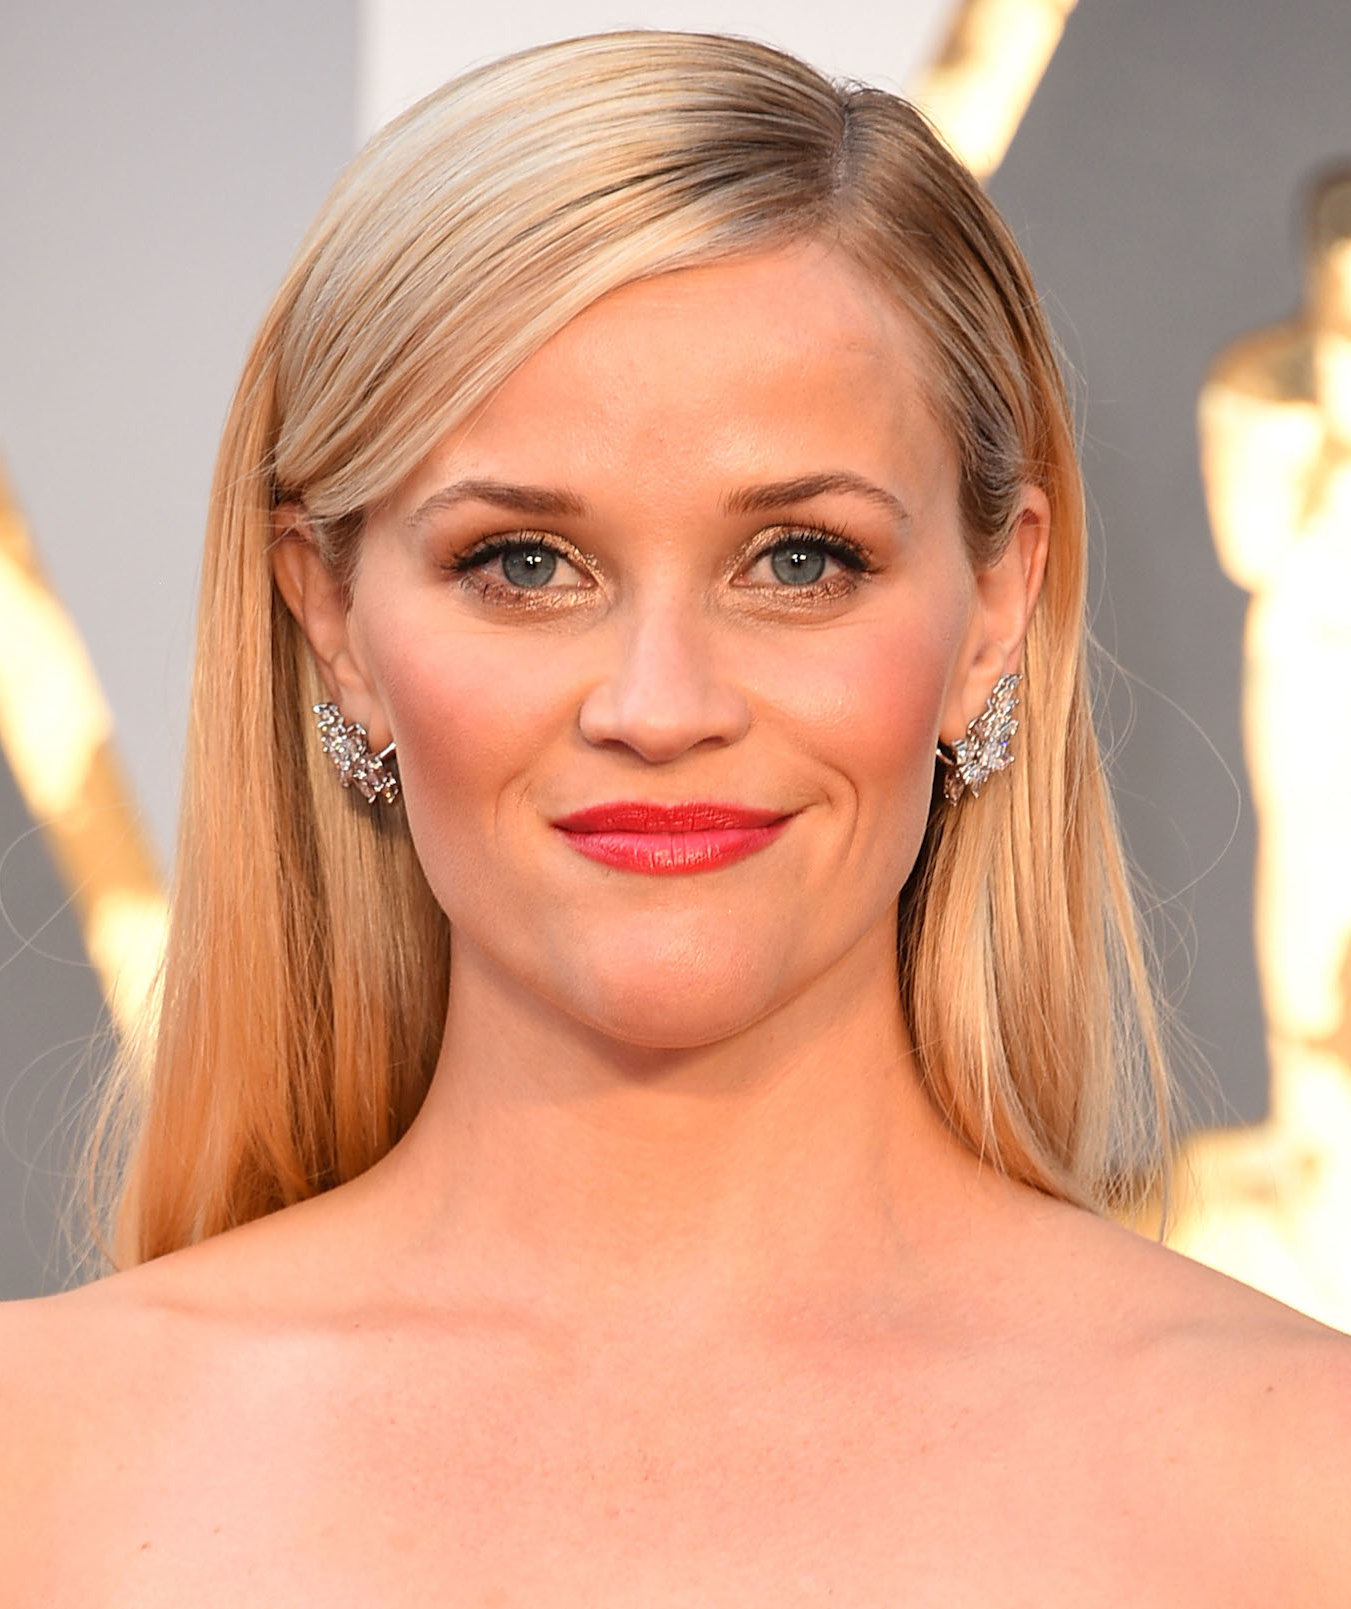 Grab Tissues! Reese Witherspoon's New Book Club Pick Is a Tearjerker